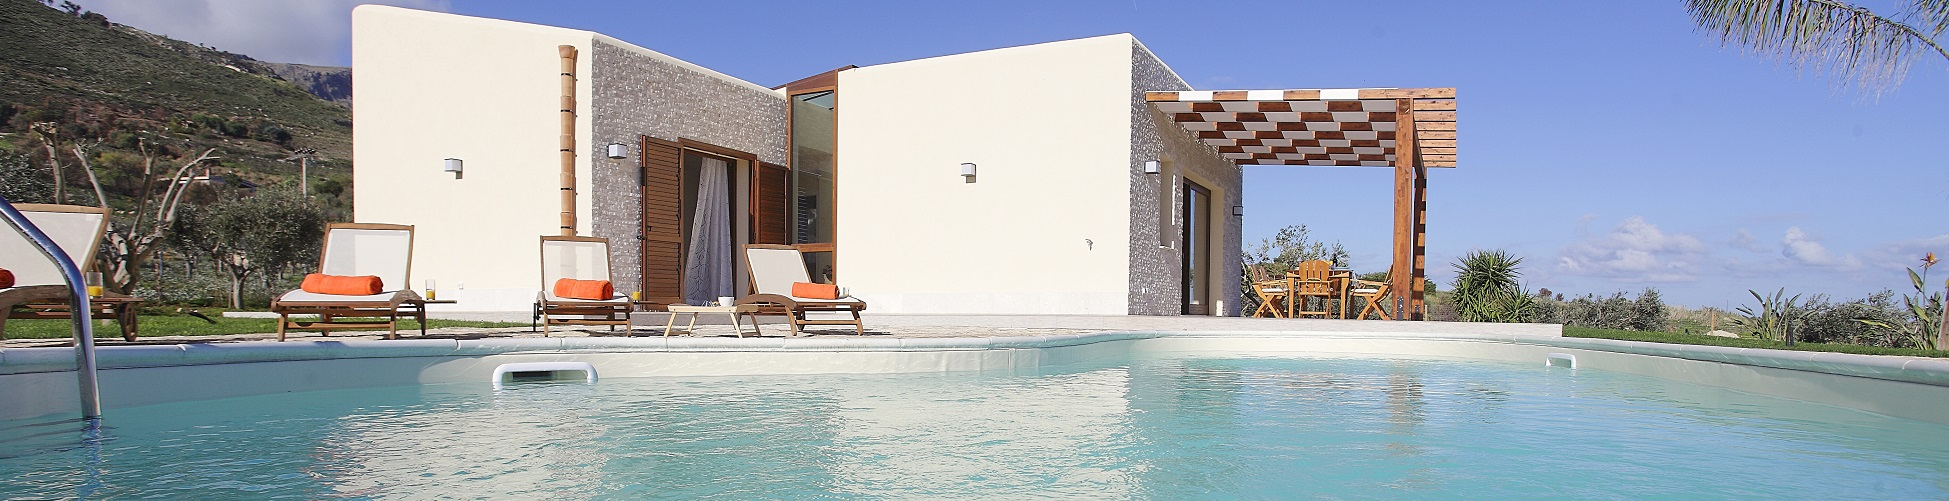 New Villa Specialist Launches In Sicily Blog Wish Sicily